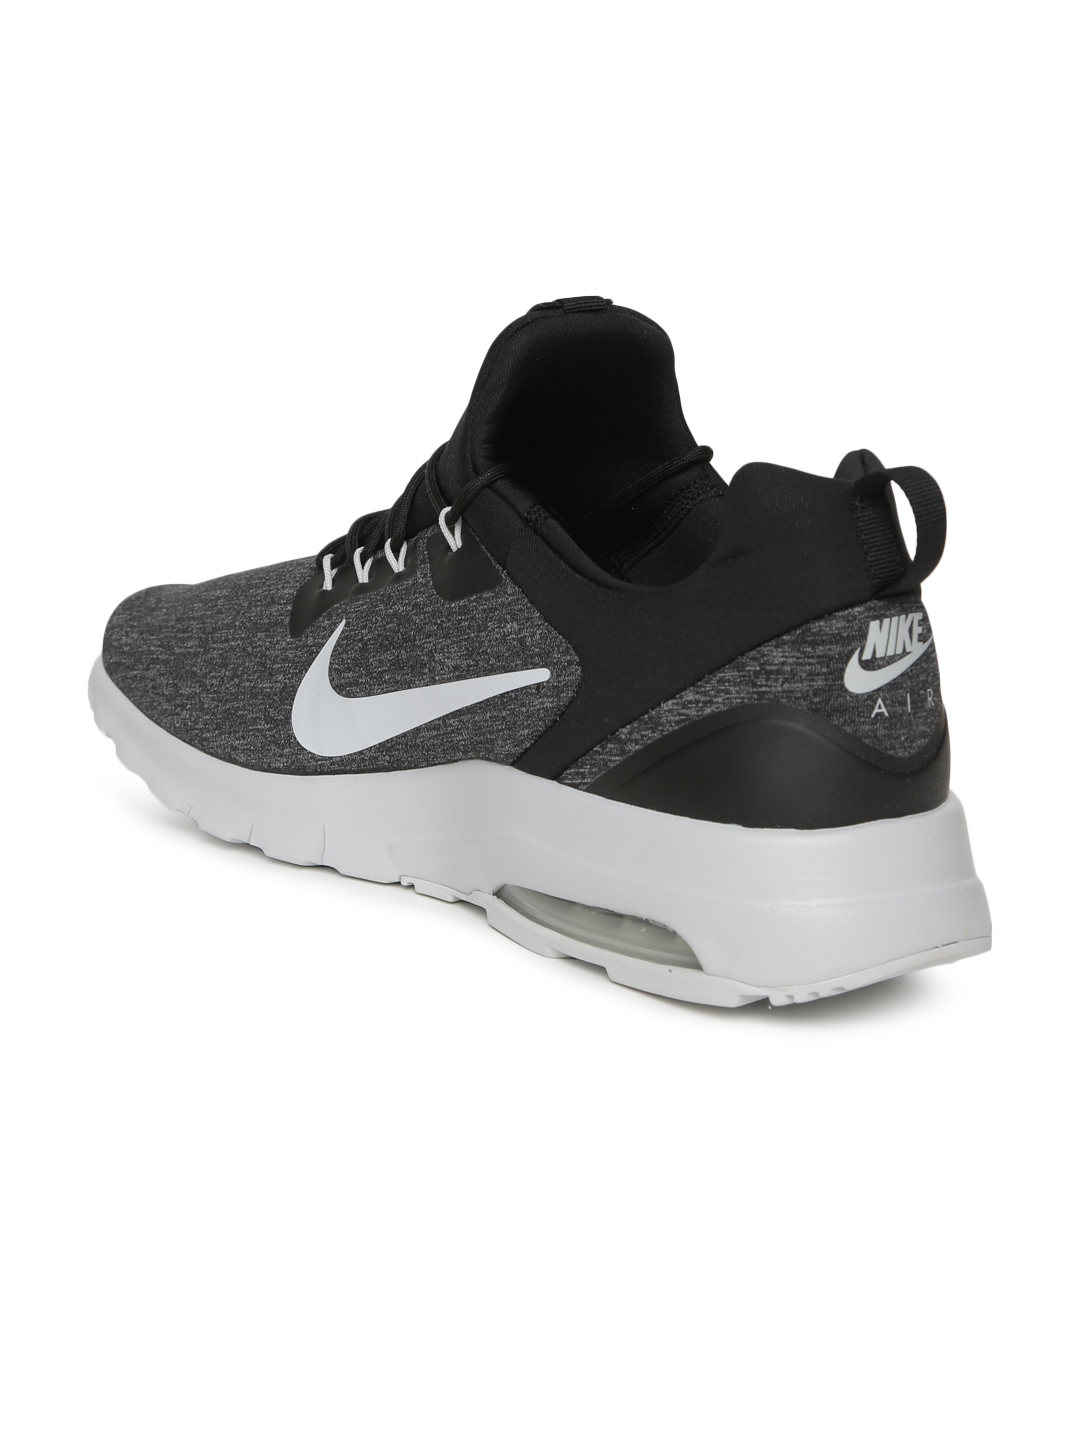 264ceafe011 Buy Nike Men Grey AIR MAX MOTION RACER Sneakers - Casual Shoes for ...